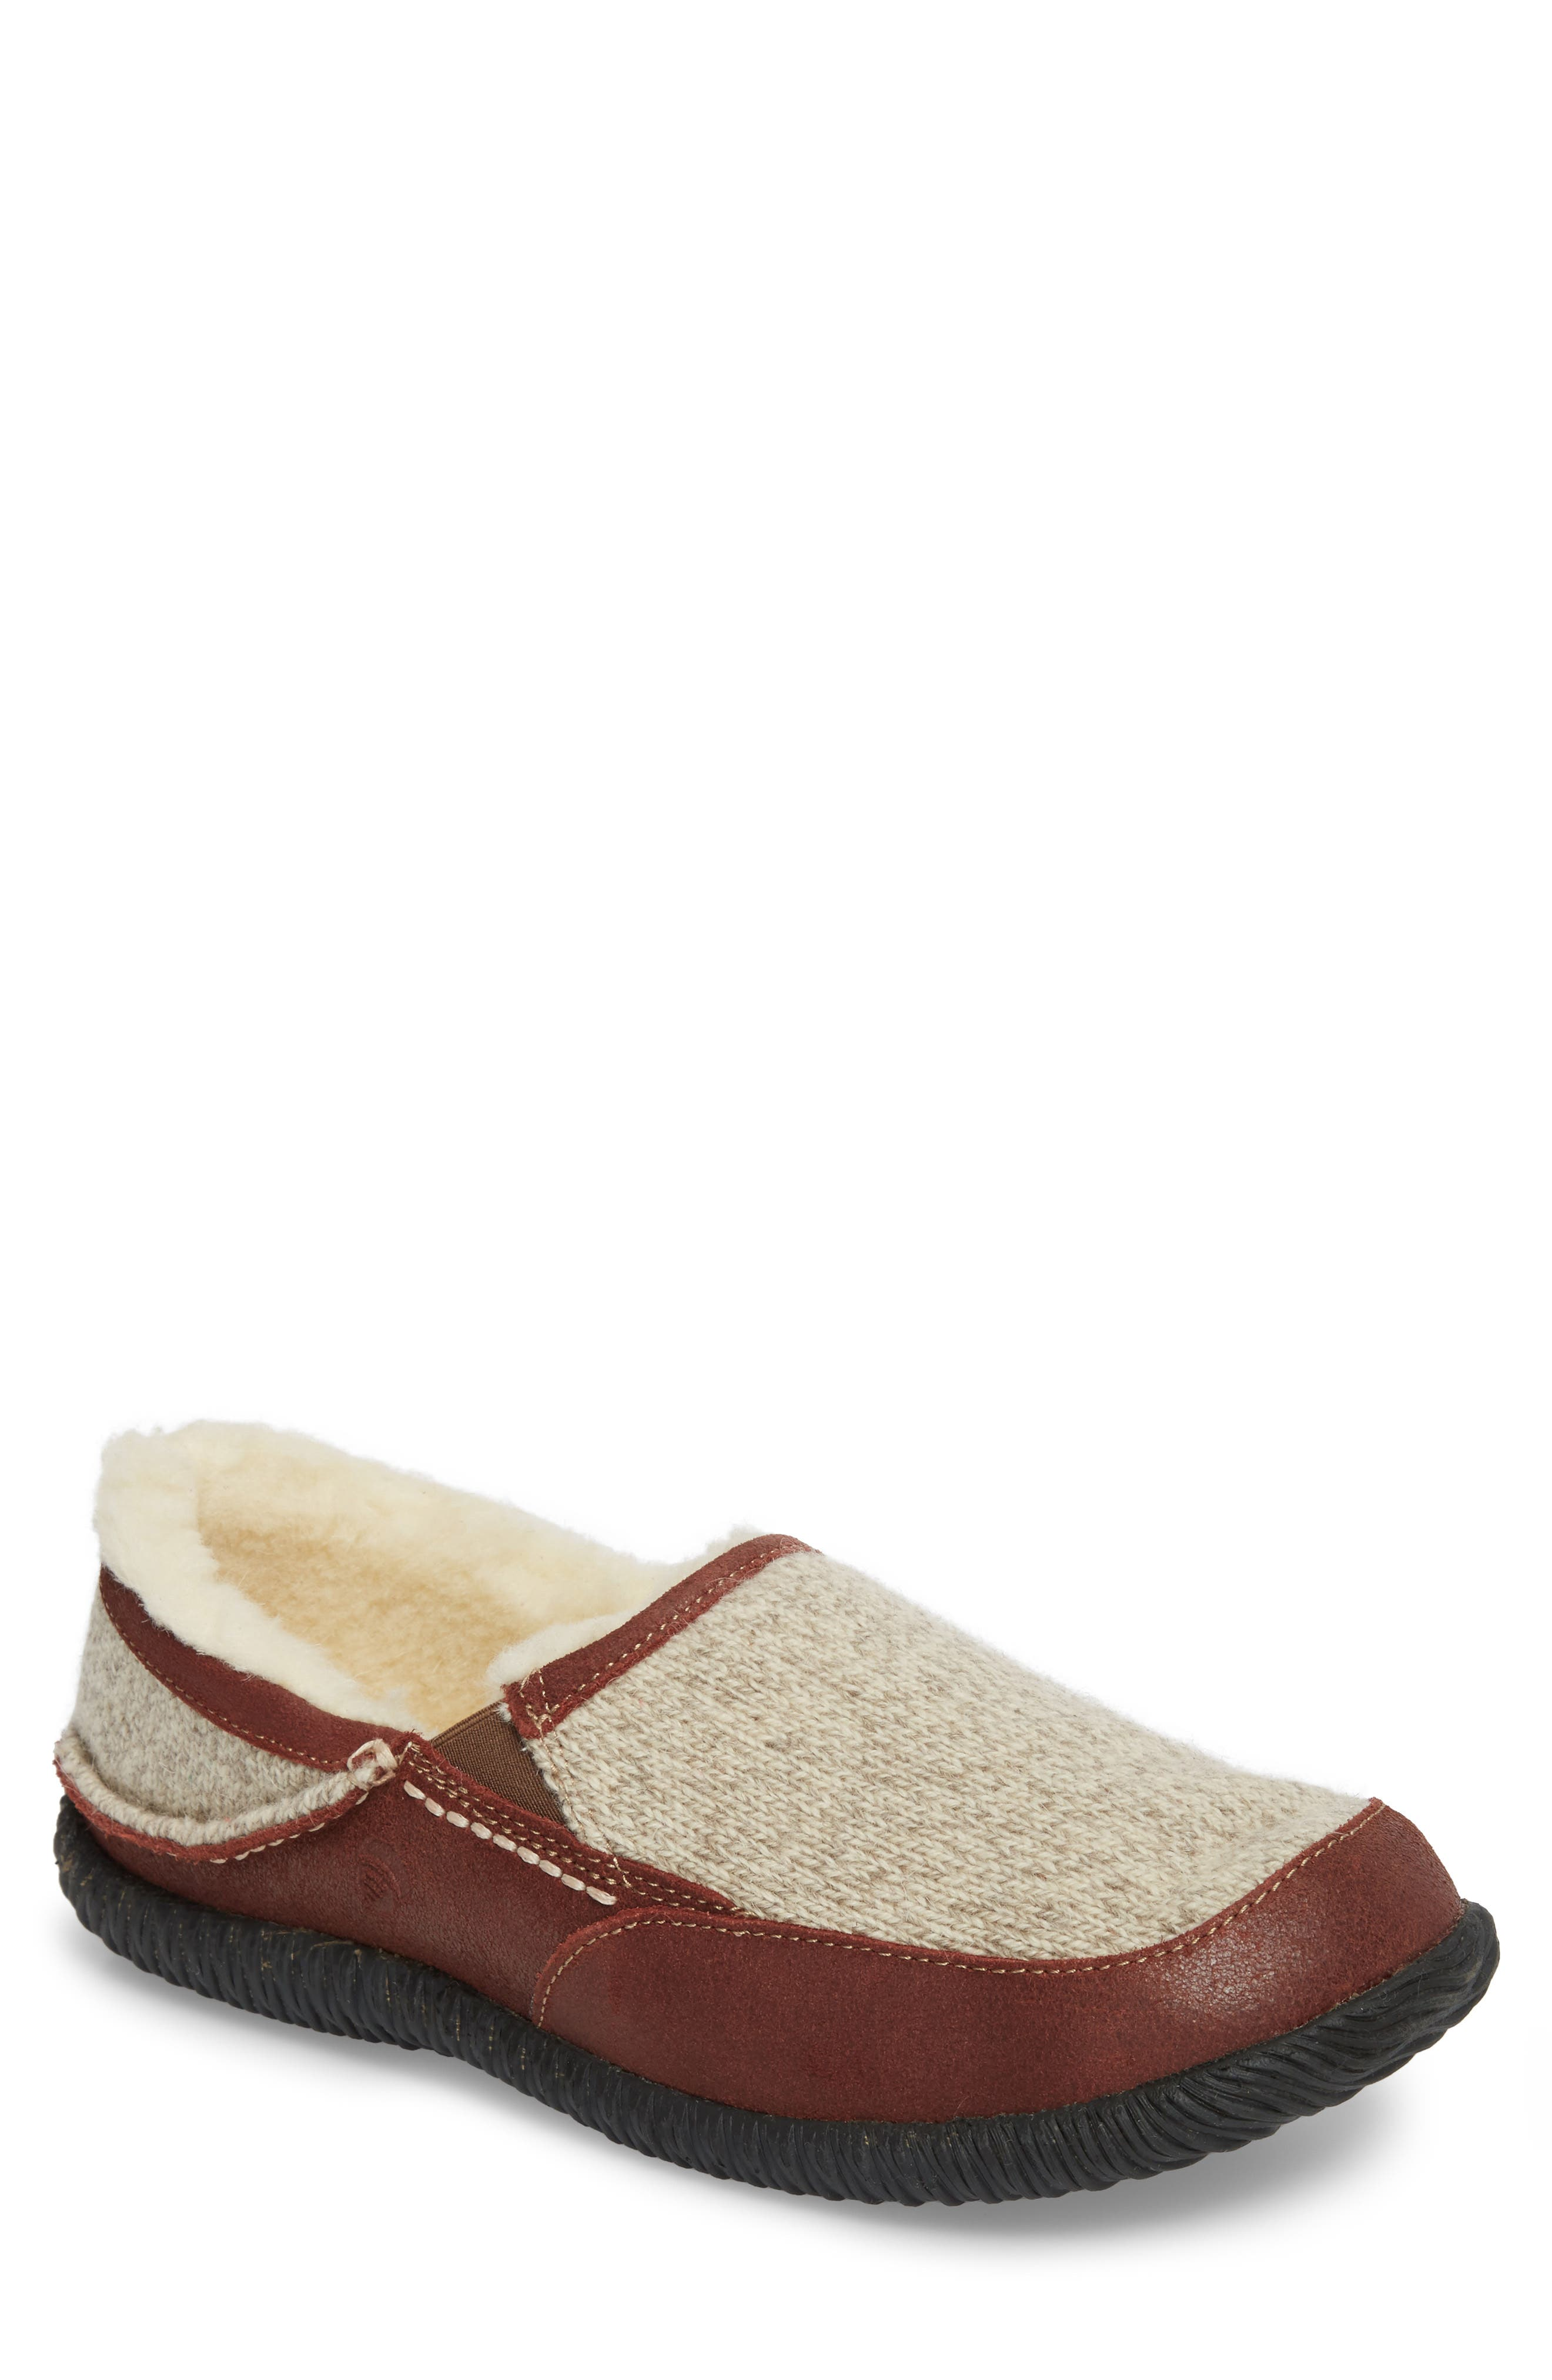 'Rambler' Moc Toe Slipper,                         Main,                         color, GREY RAGG WOOL